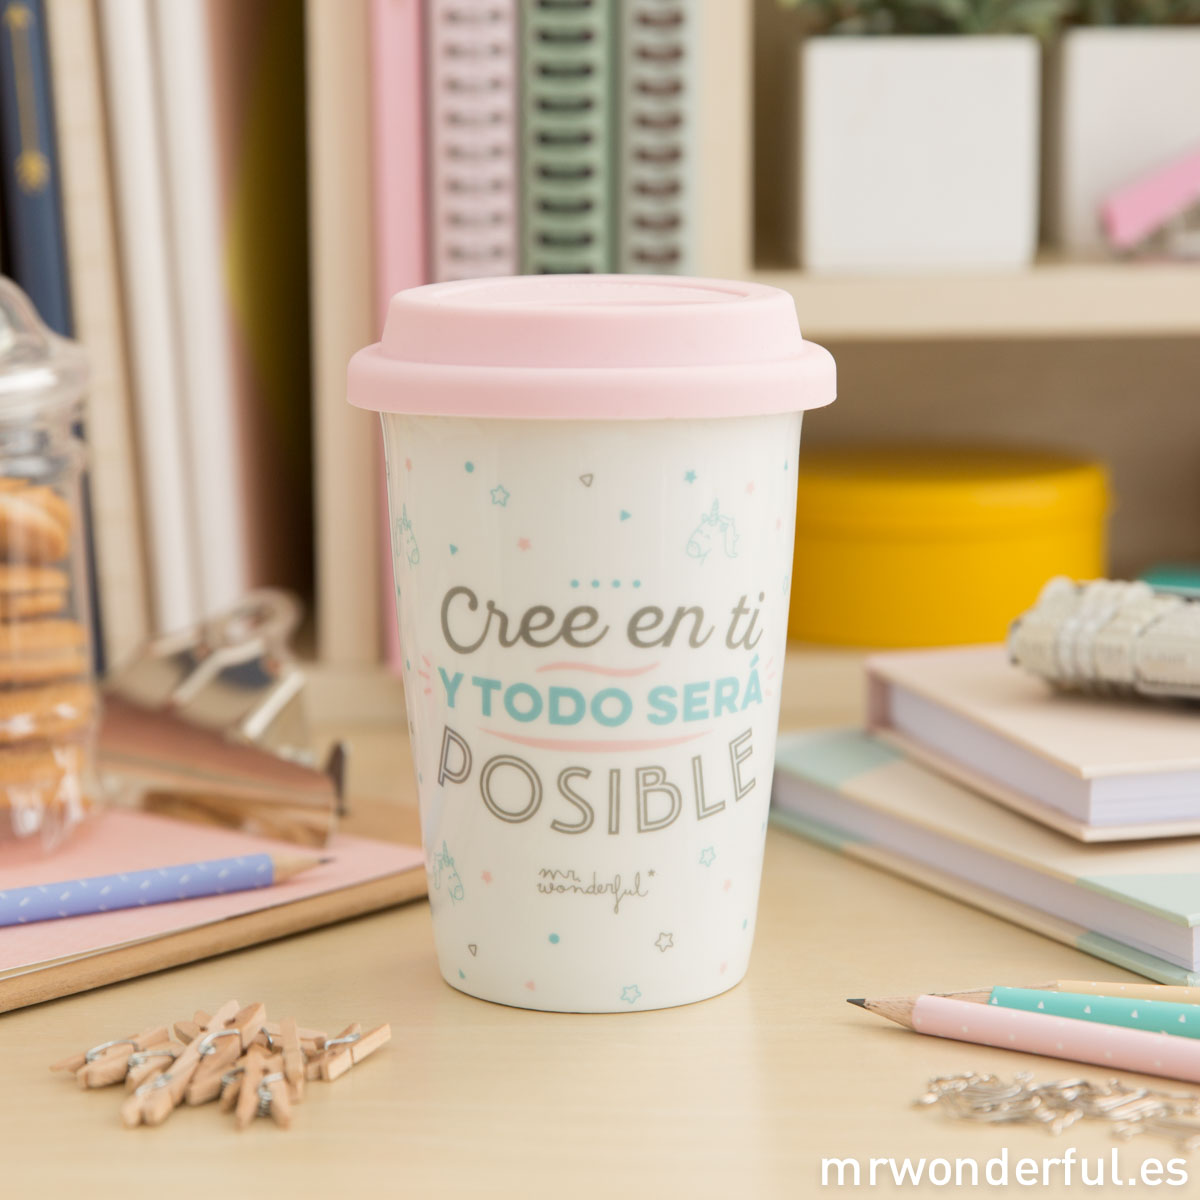 mrwonderful_8435460709668_WOA03799ES_take_away_cree-en-ti-y-todo-sera-posible-ES-3